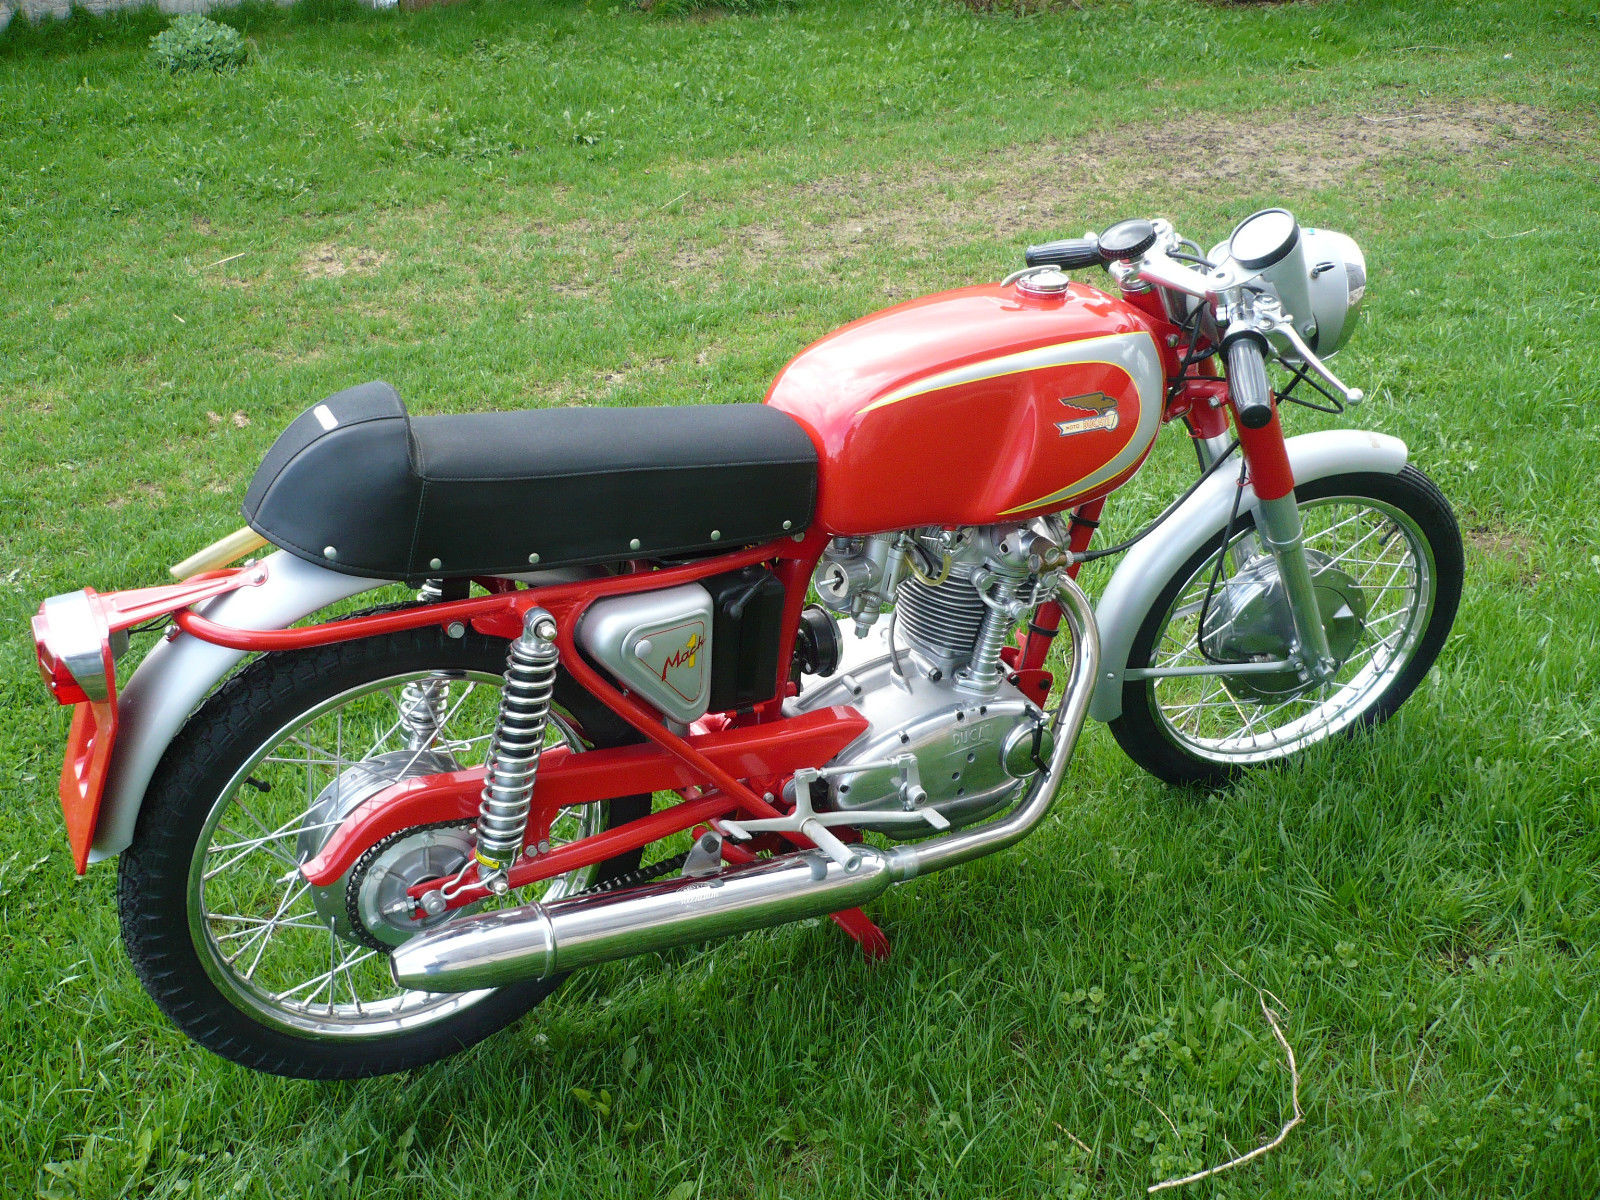 Ducati Mach 1 - 1965 - Right Side View, Engine and Gearbox, Exhaust System, Chain Guard and Wheels.